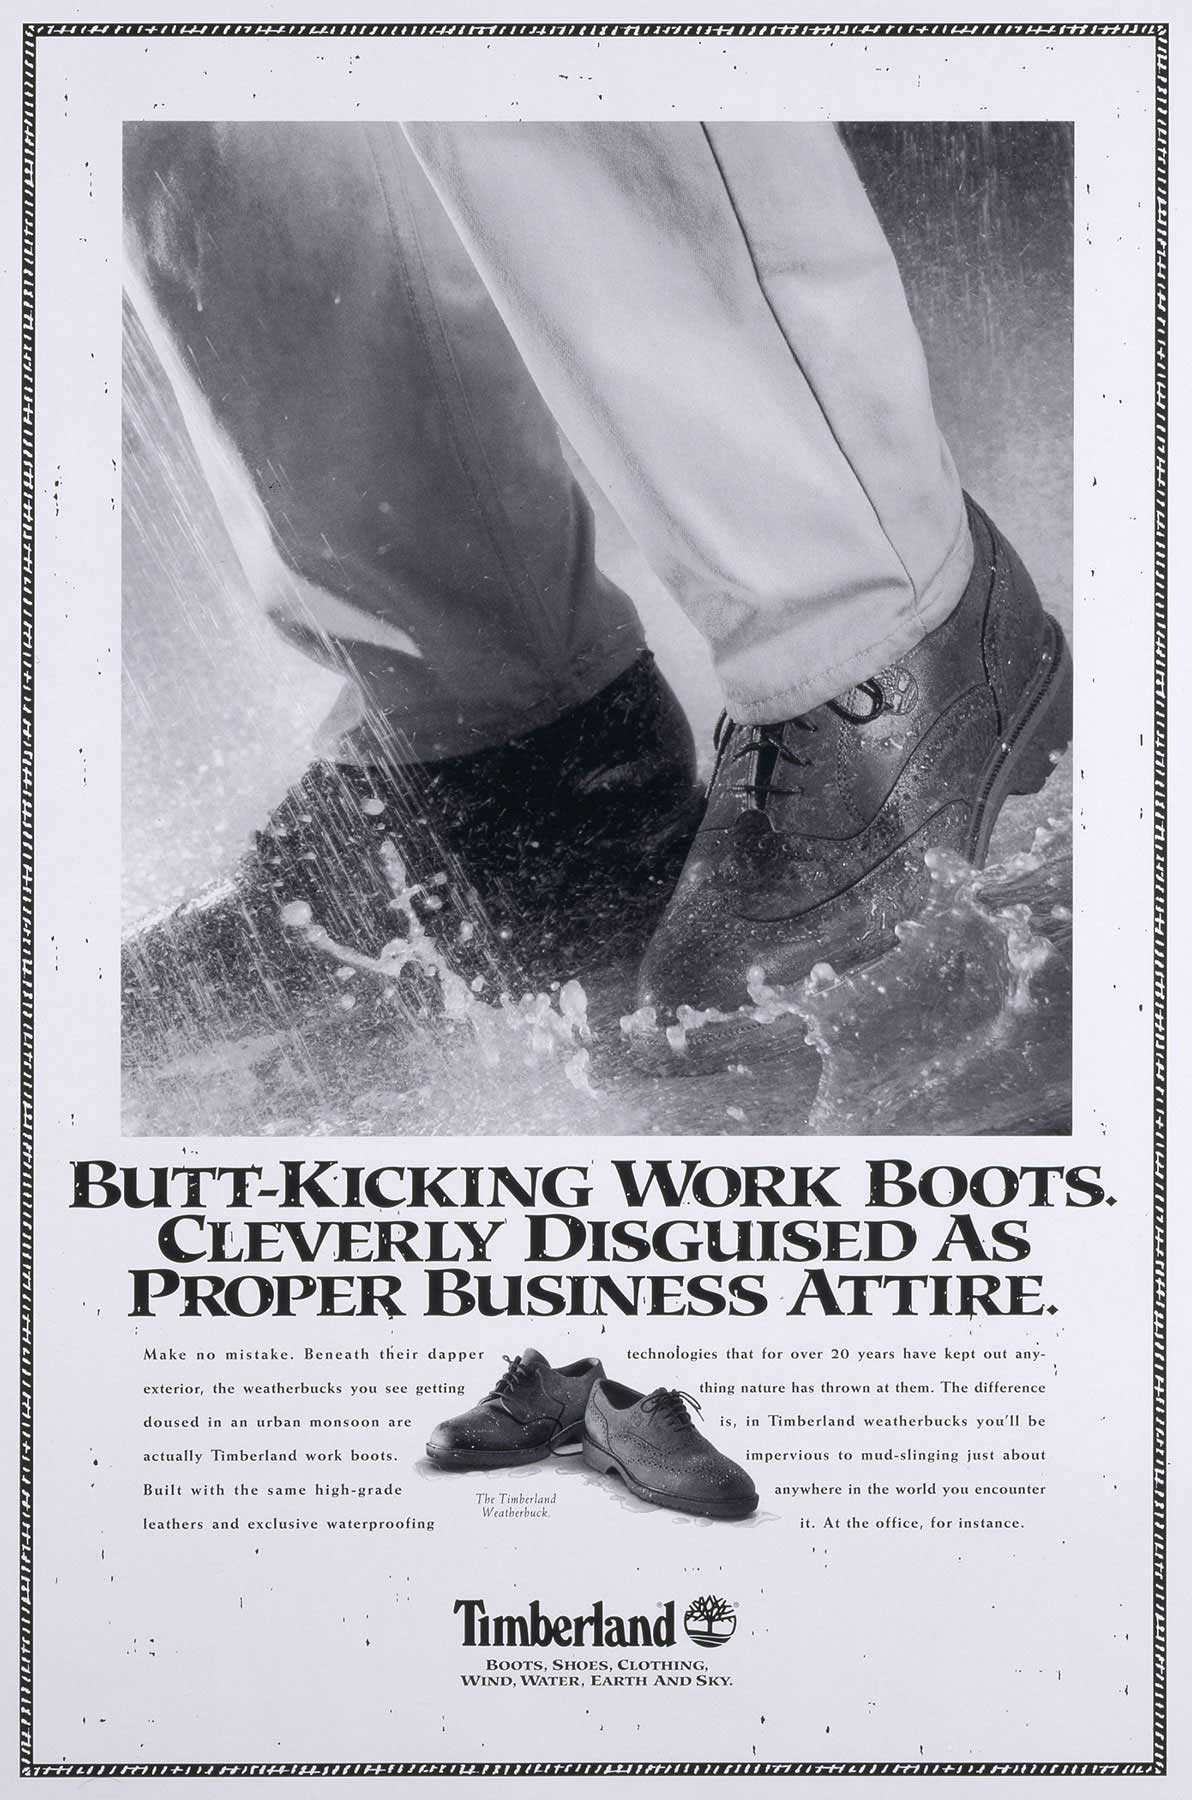 timberland-shoes-in-rain-ad.jpg